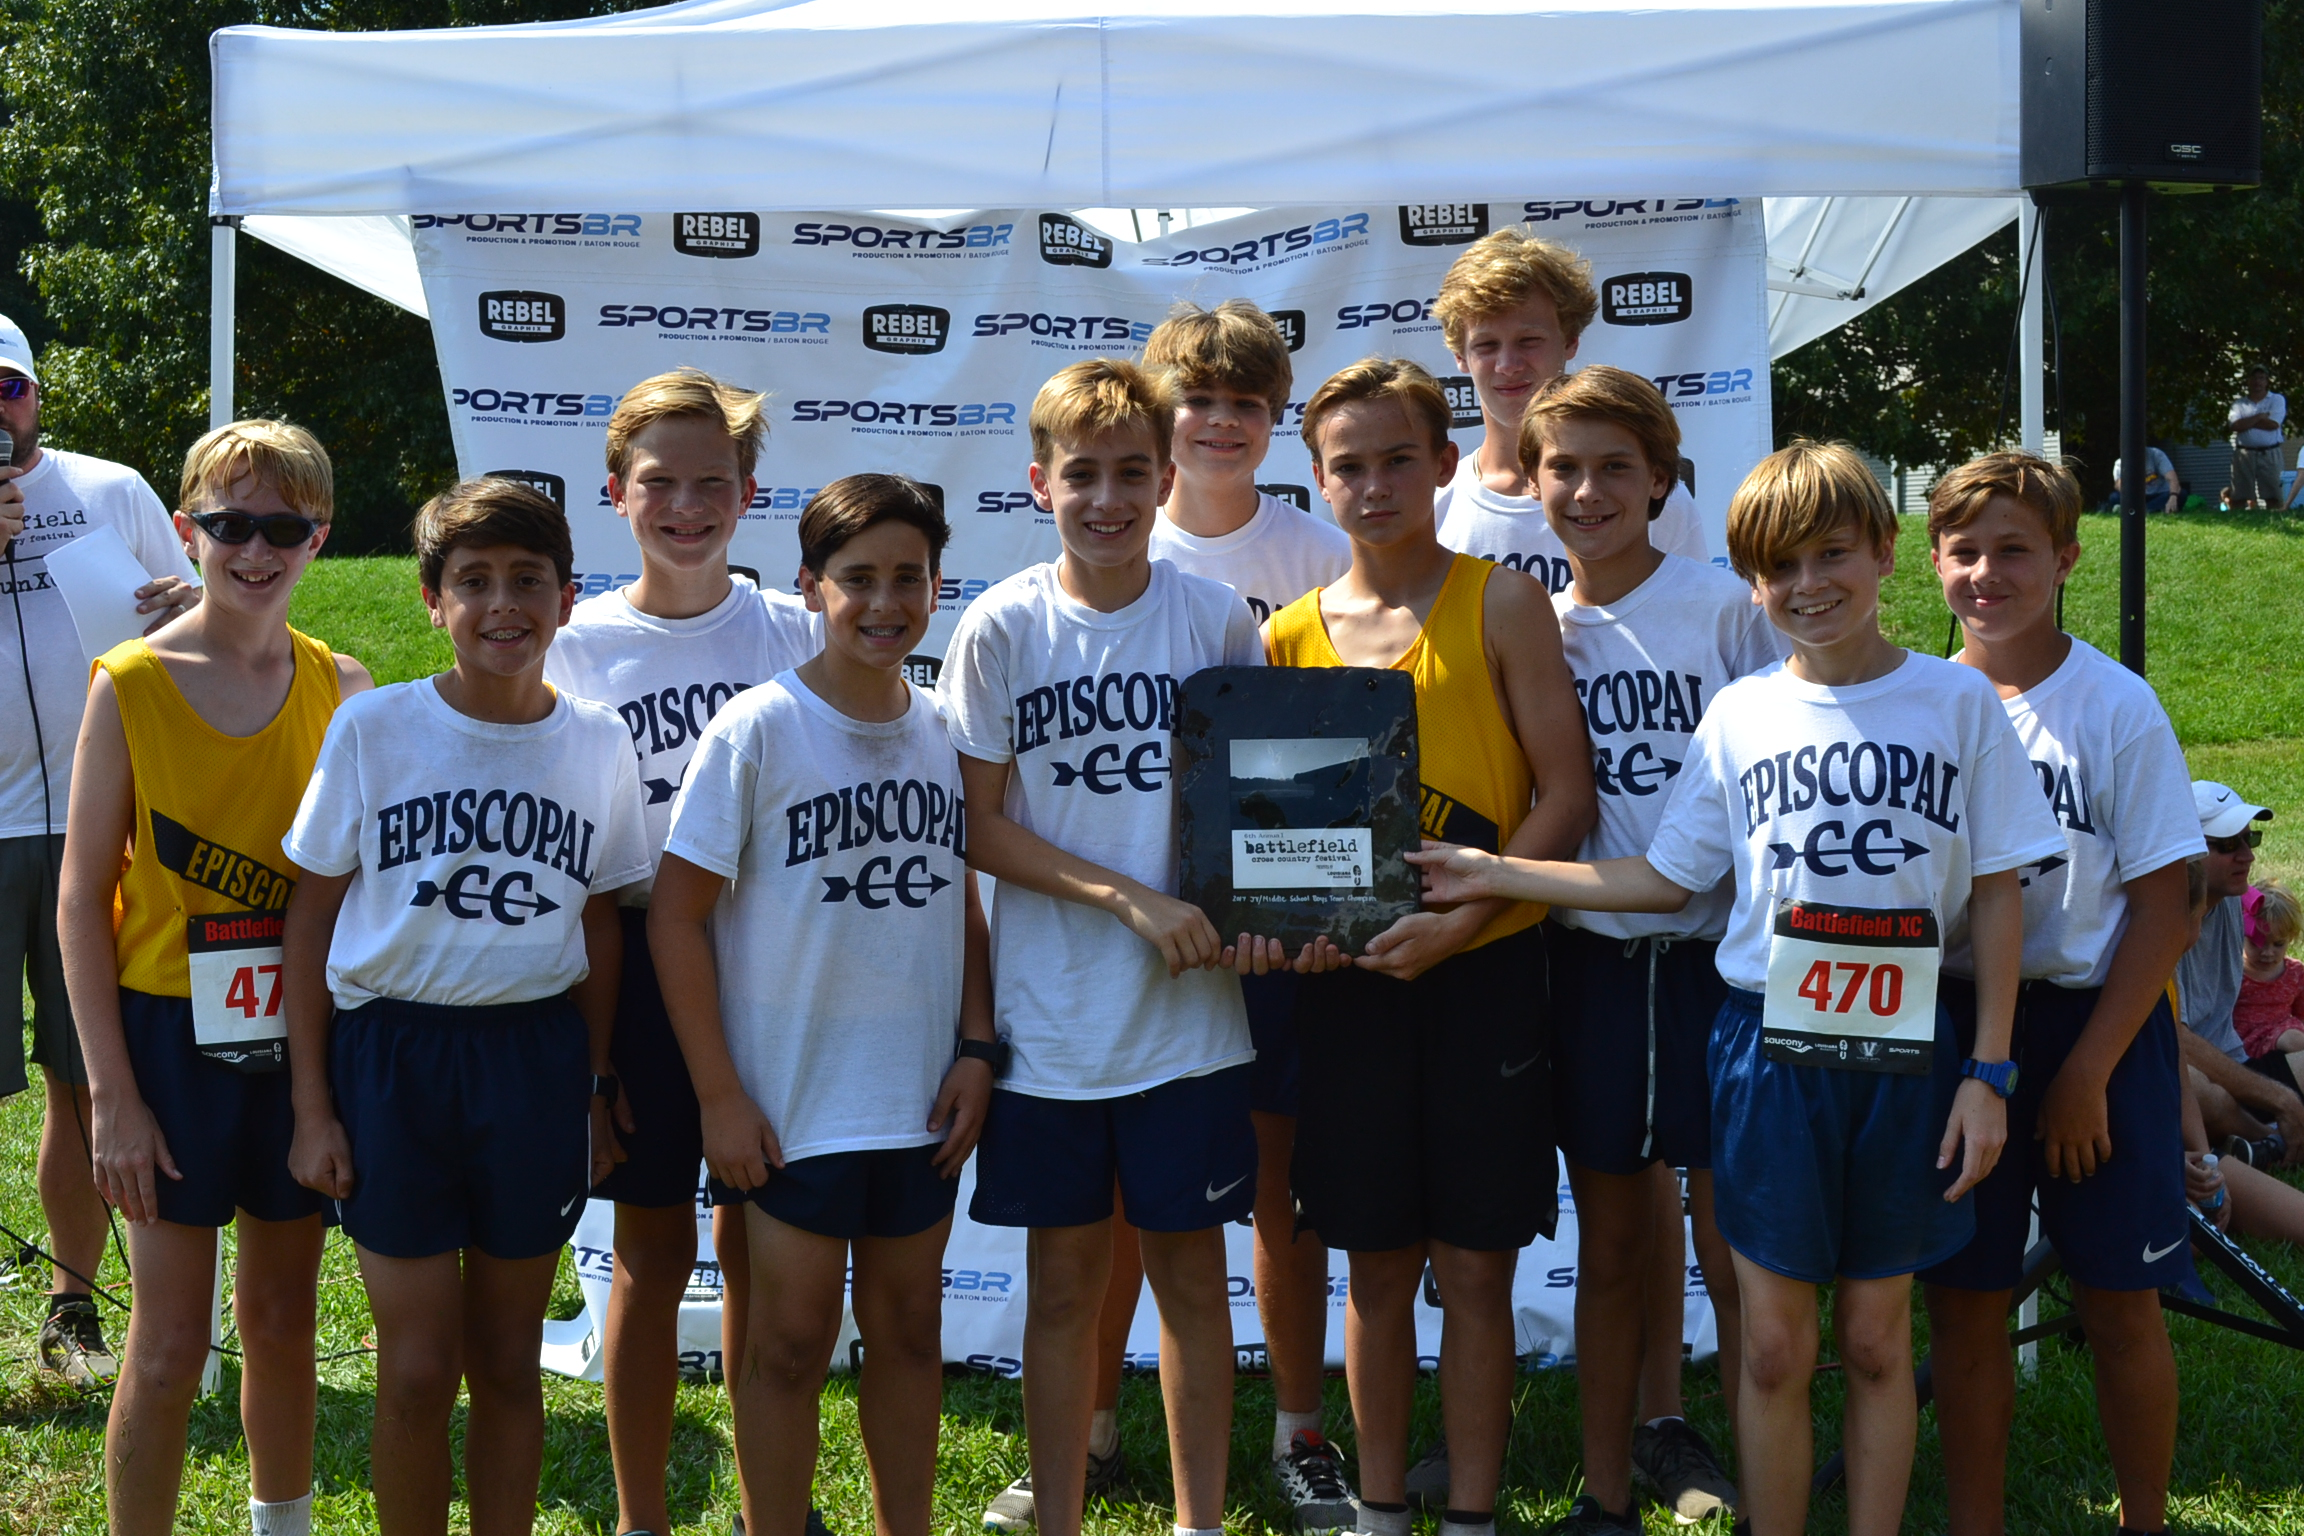 2017 Boys Middle School Champions - Episcopal